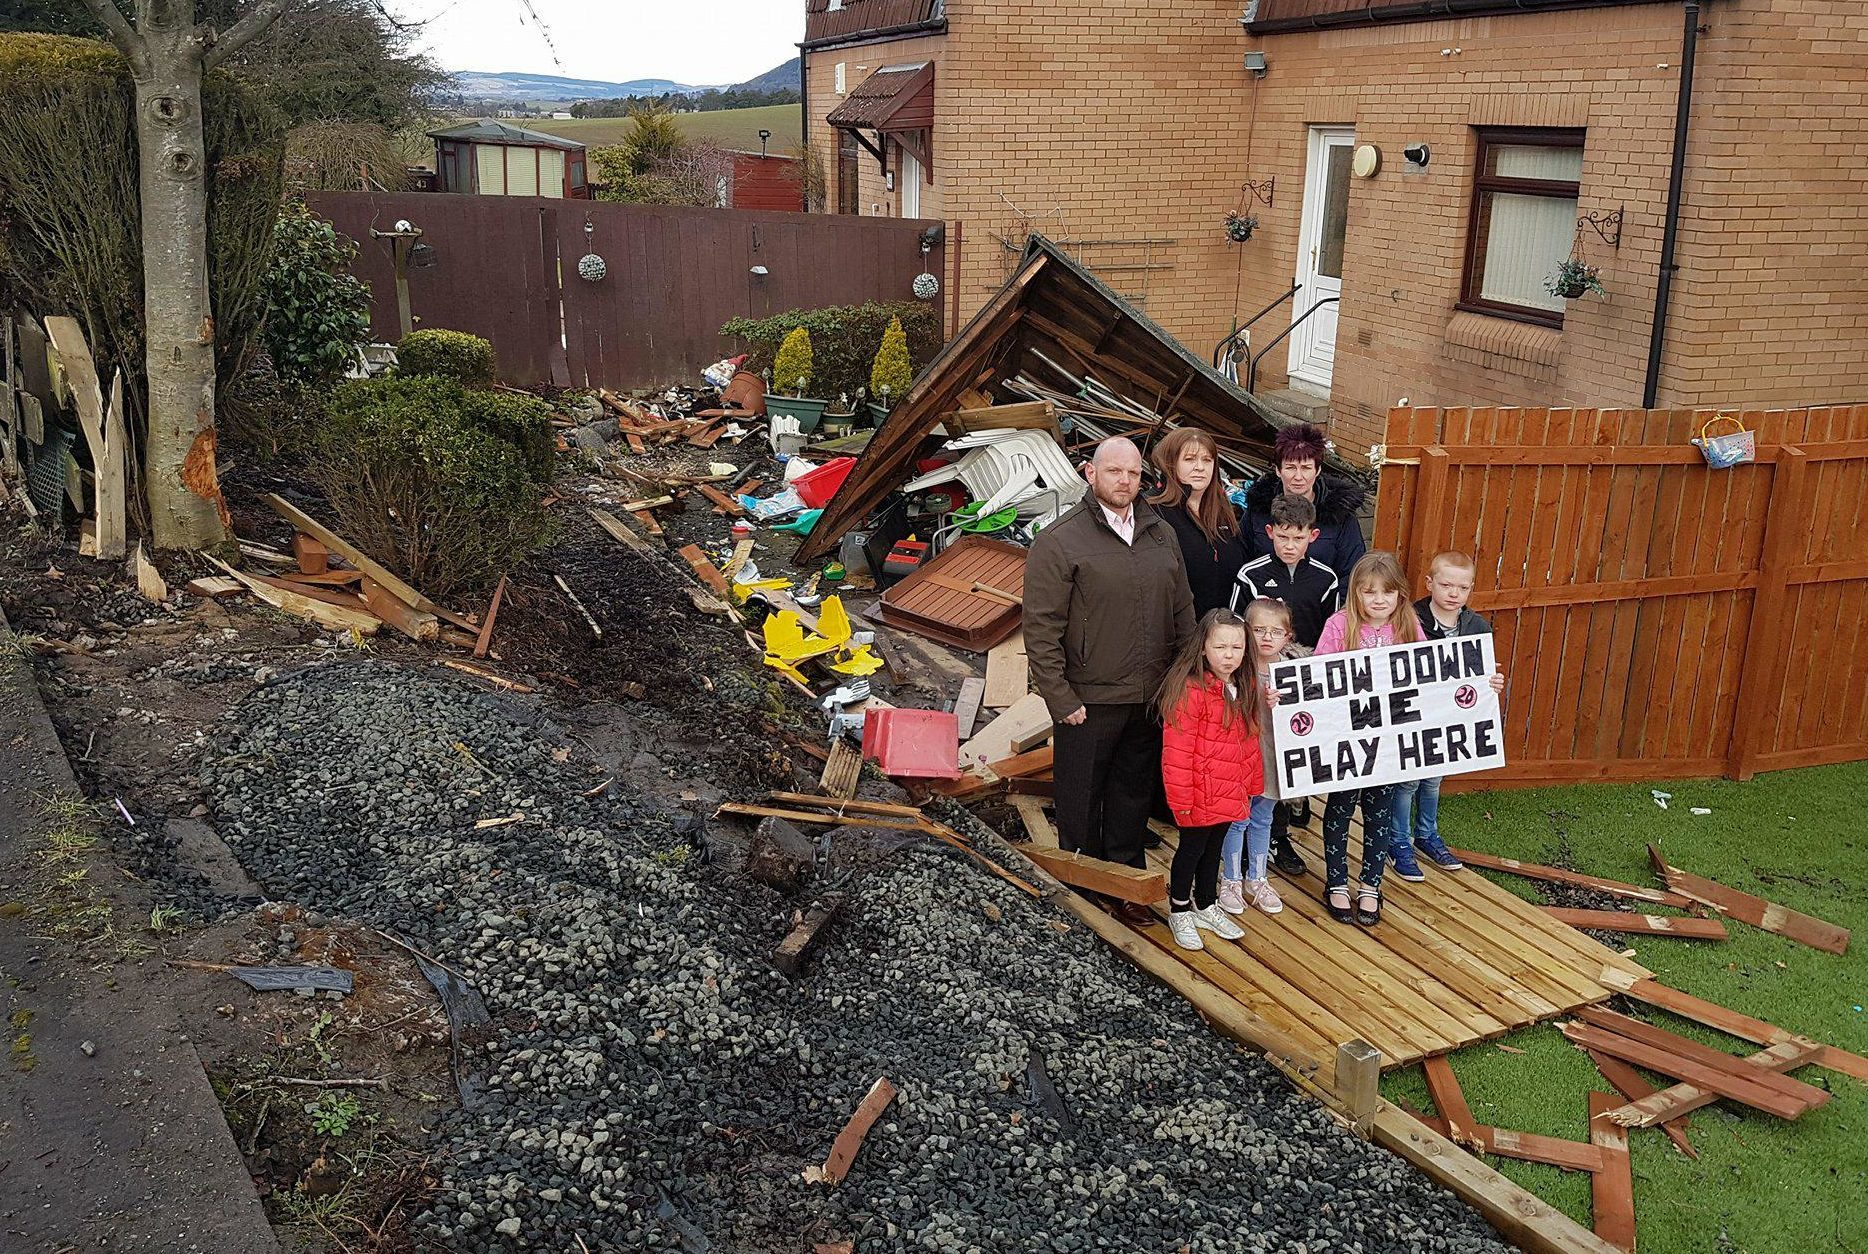 Councillor Darren Watt along with some of the families and local children living in fear, right beside the damage.